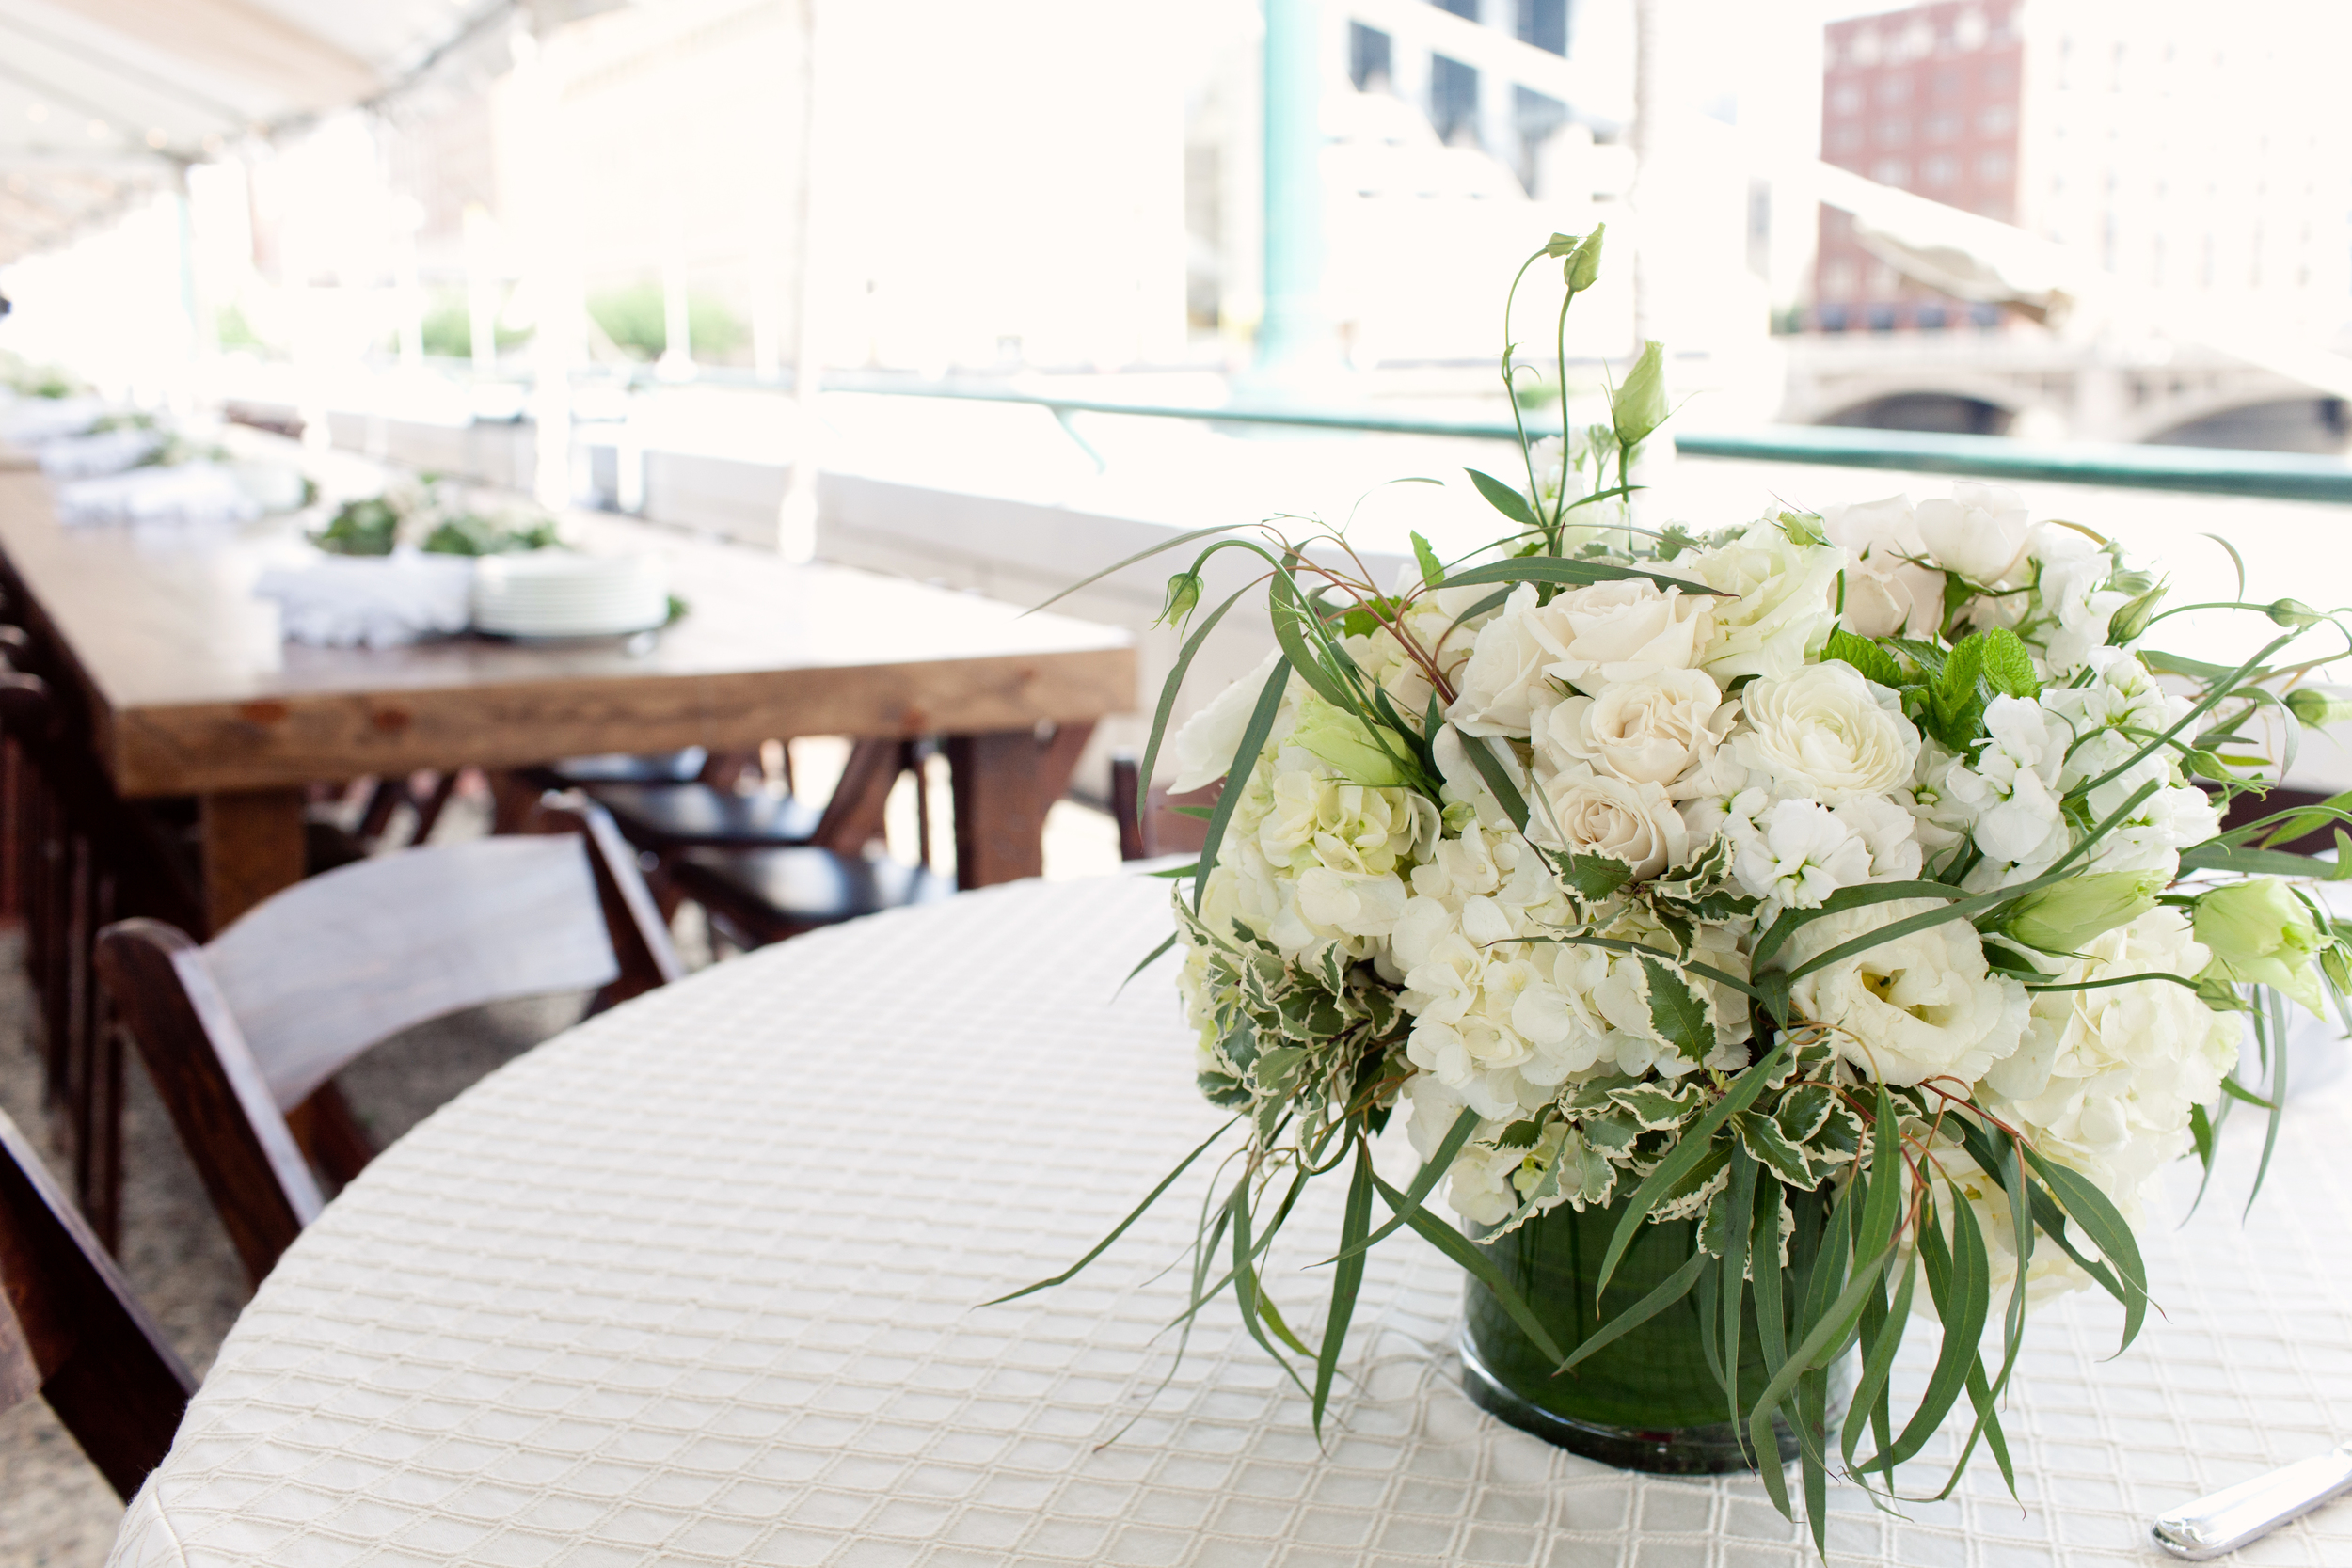 Gillette Bridge in Grand Rapids Event with Floral Centerpieces